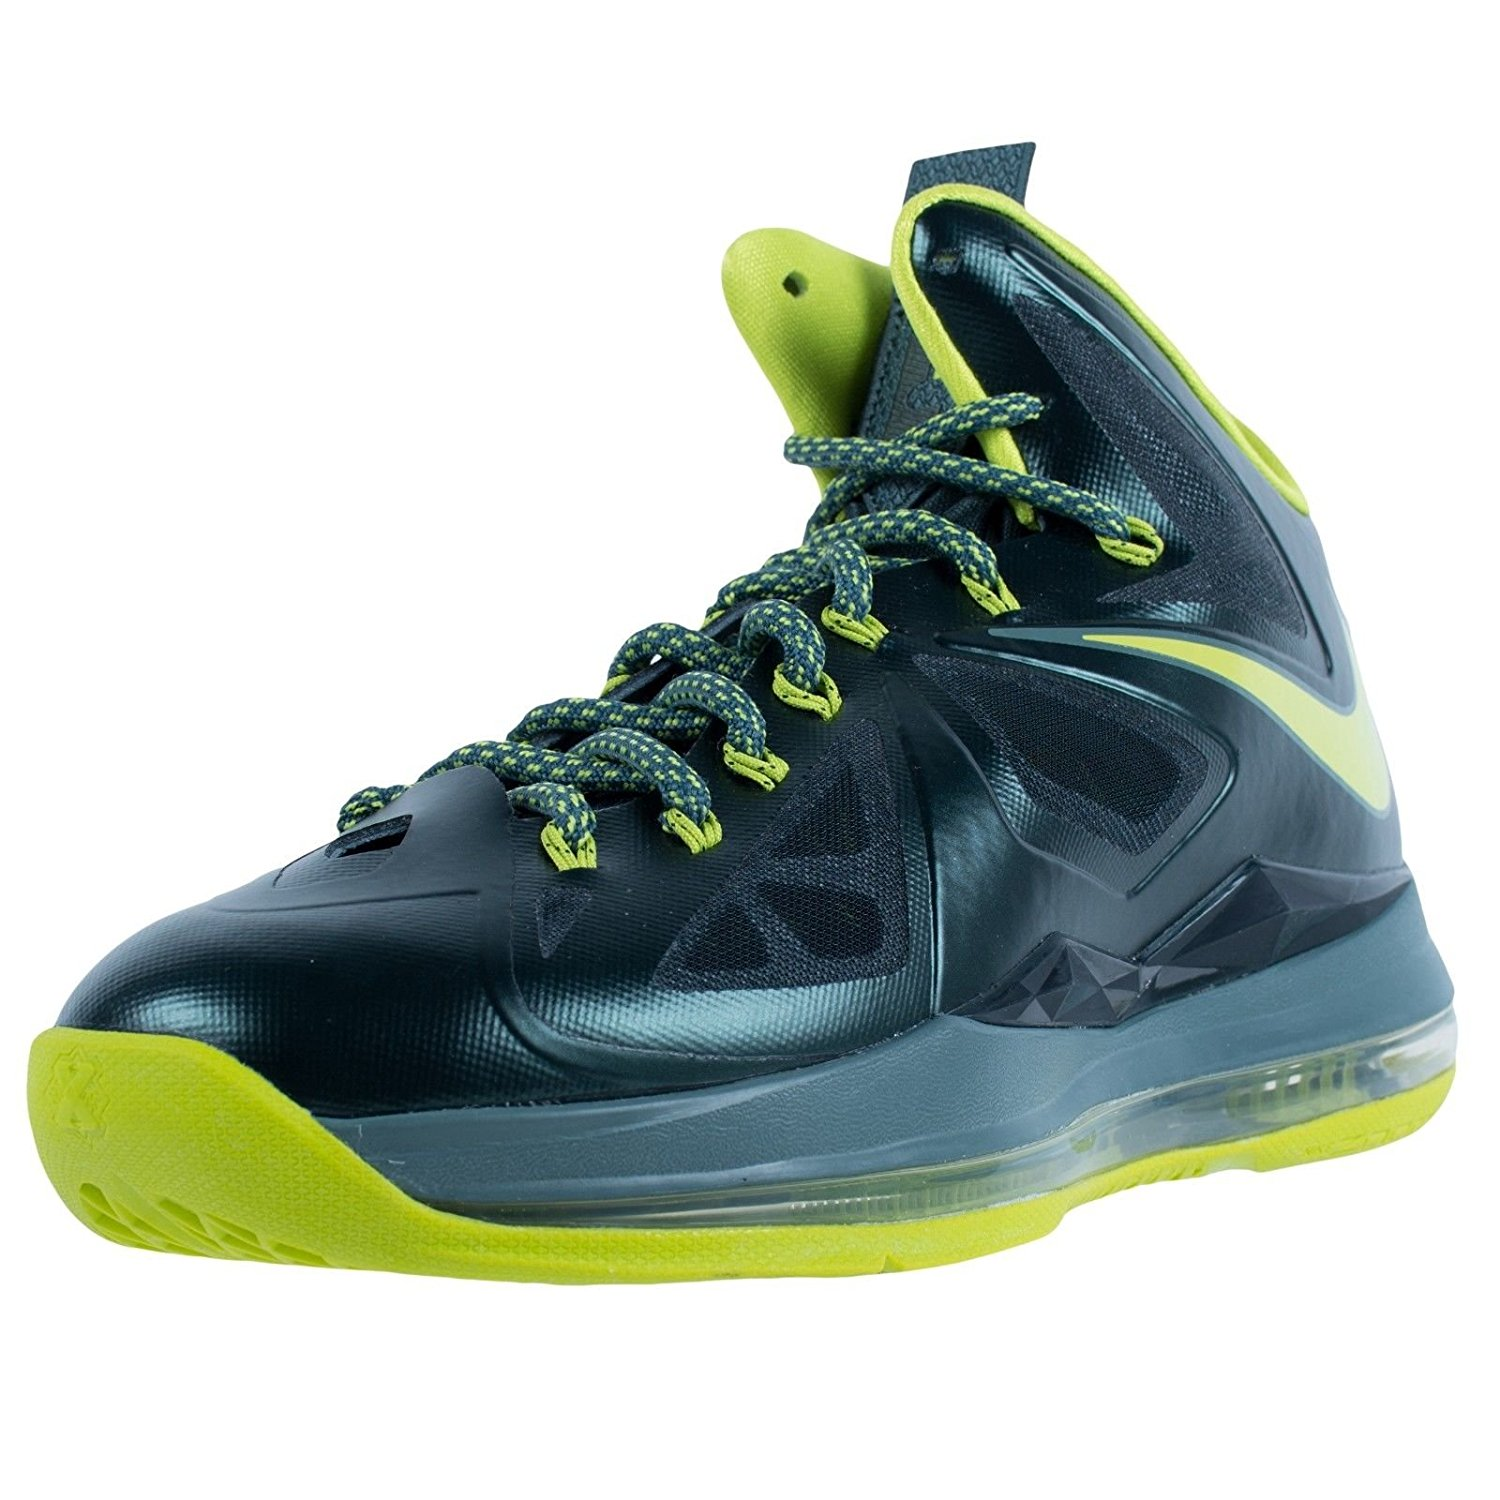 4db1e02798a3 Get Quotations · NIKE LEBRON X BASKETBALL SNEAKERS DUNKMAN SEAWEED ATOMIC  GREEN 541100 300 SZ 7.5